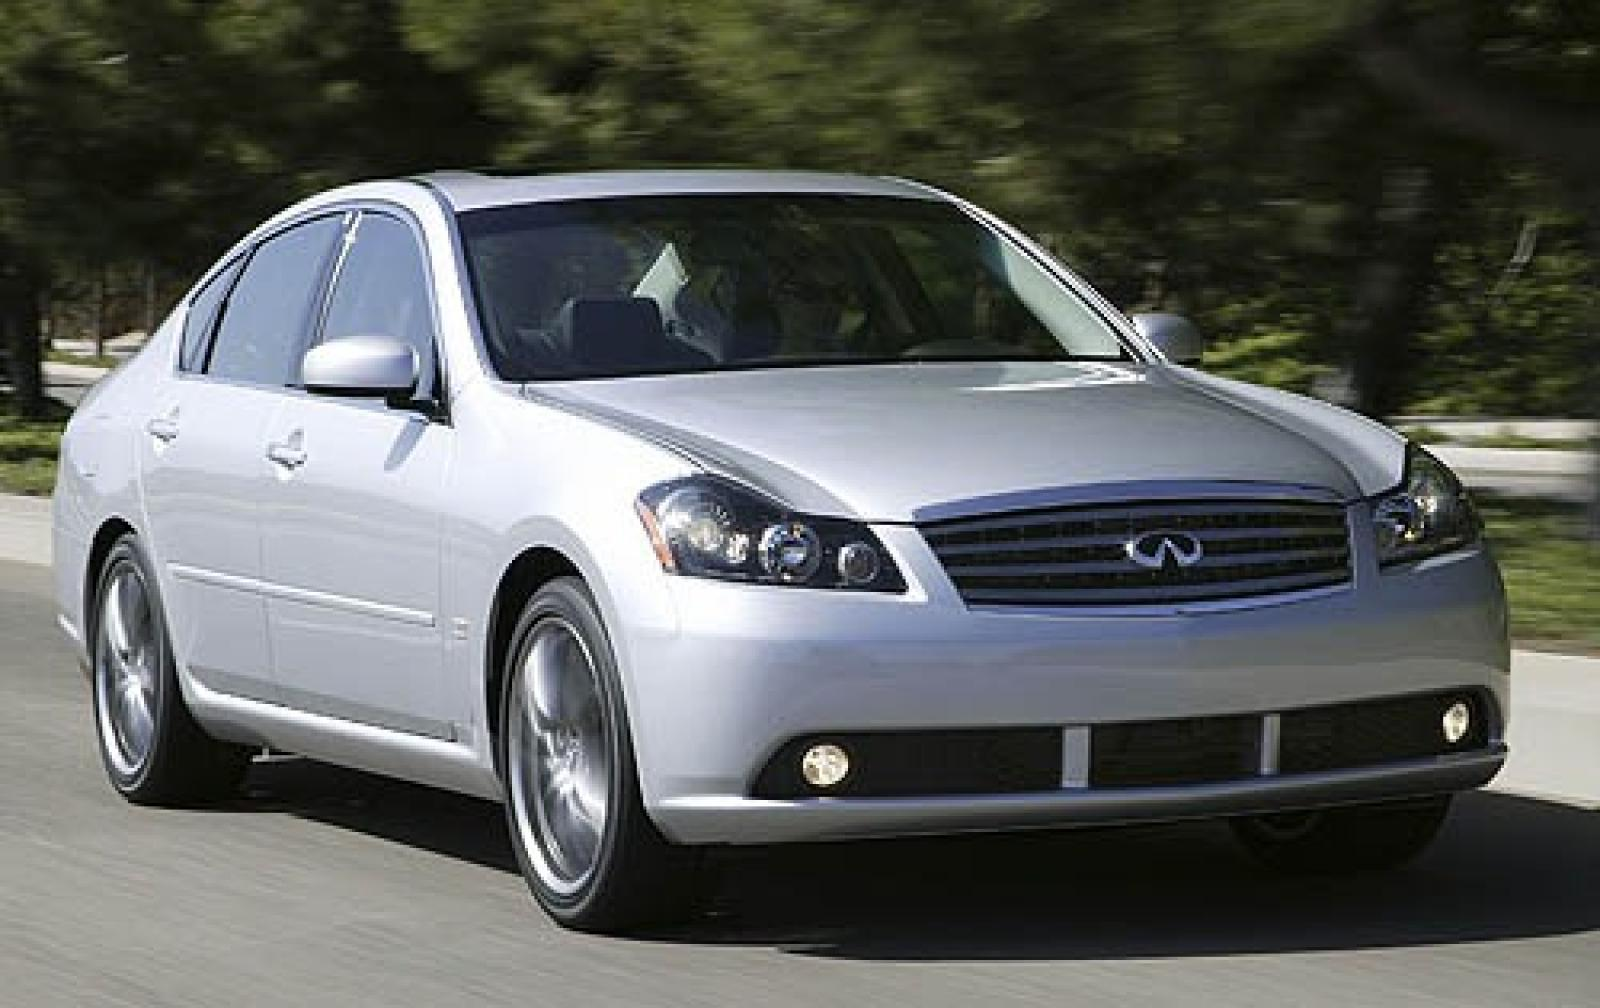 Picture of 2007 infiniti m35 4 dr awd exterior - Infiniti Gallery